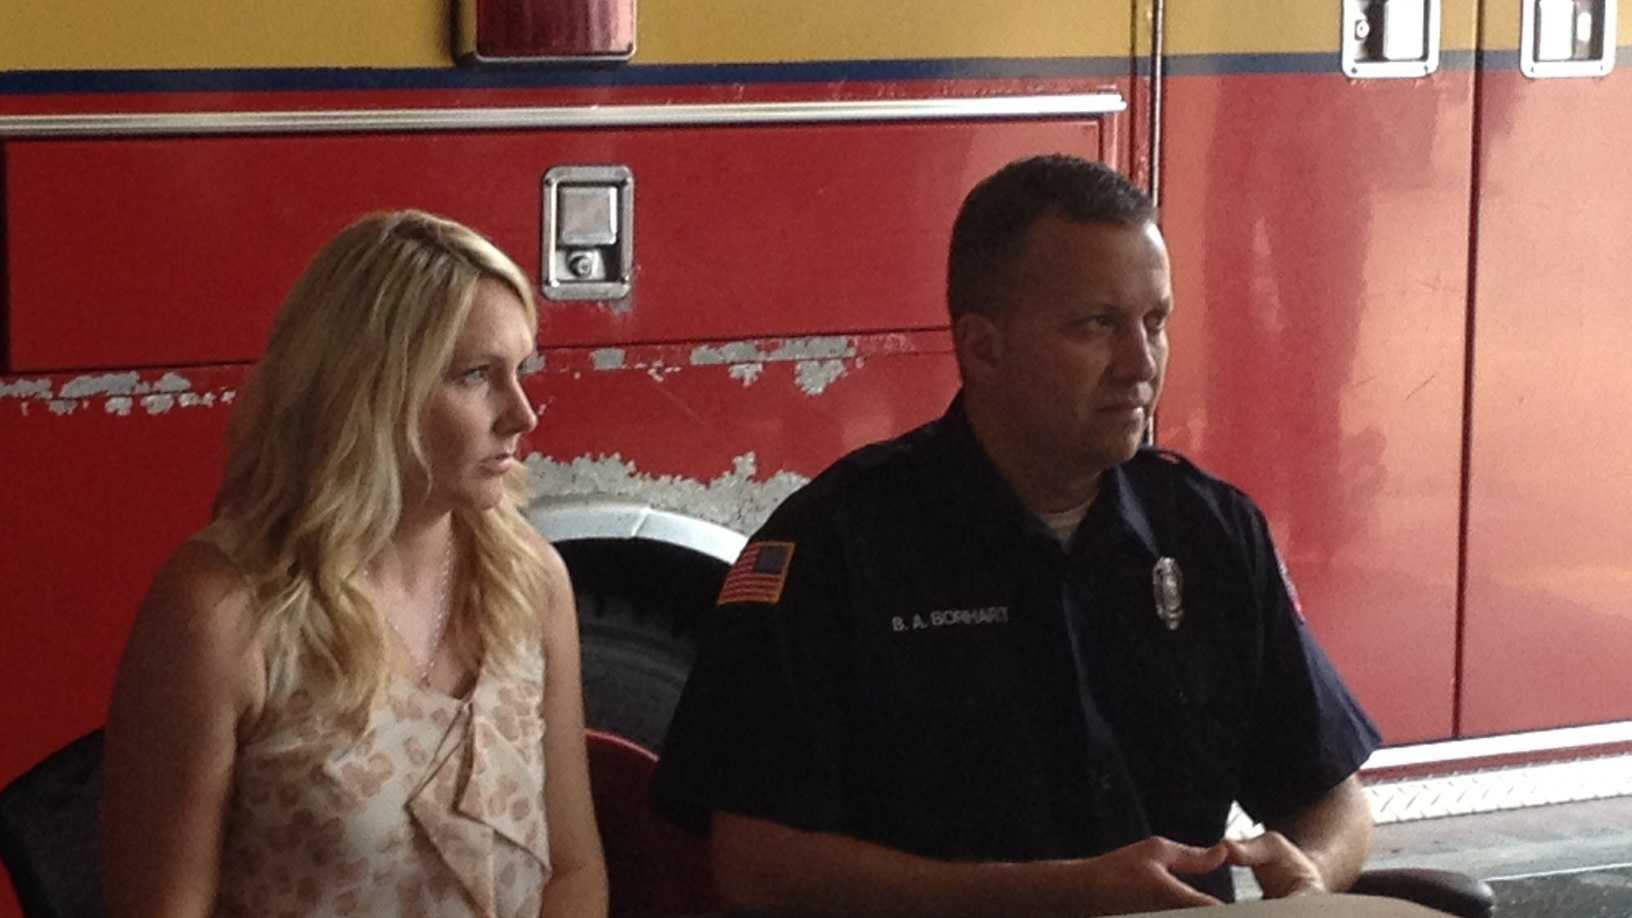 Firefighter Brock Borhart spoke publicly for the first time since Monday's shooting in the back of an ambulance.